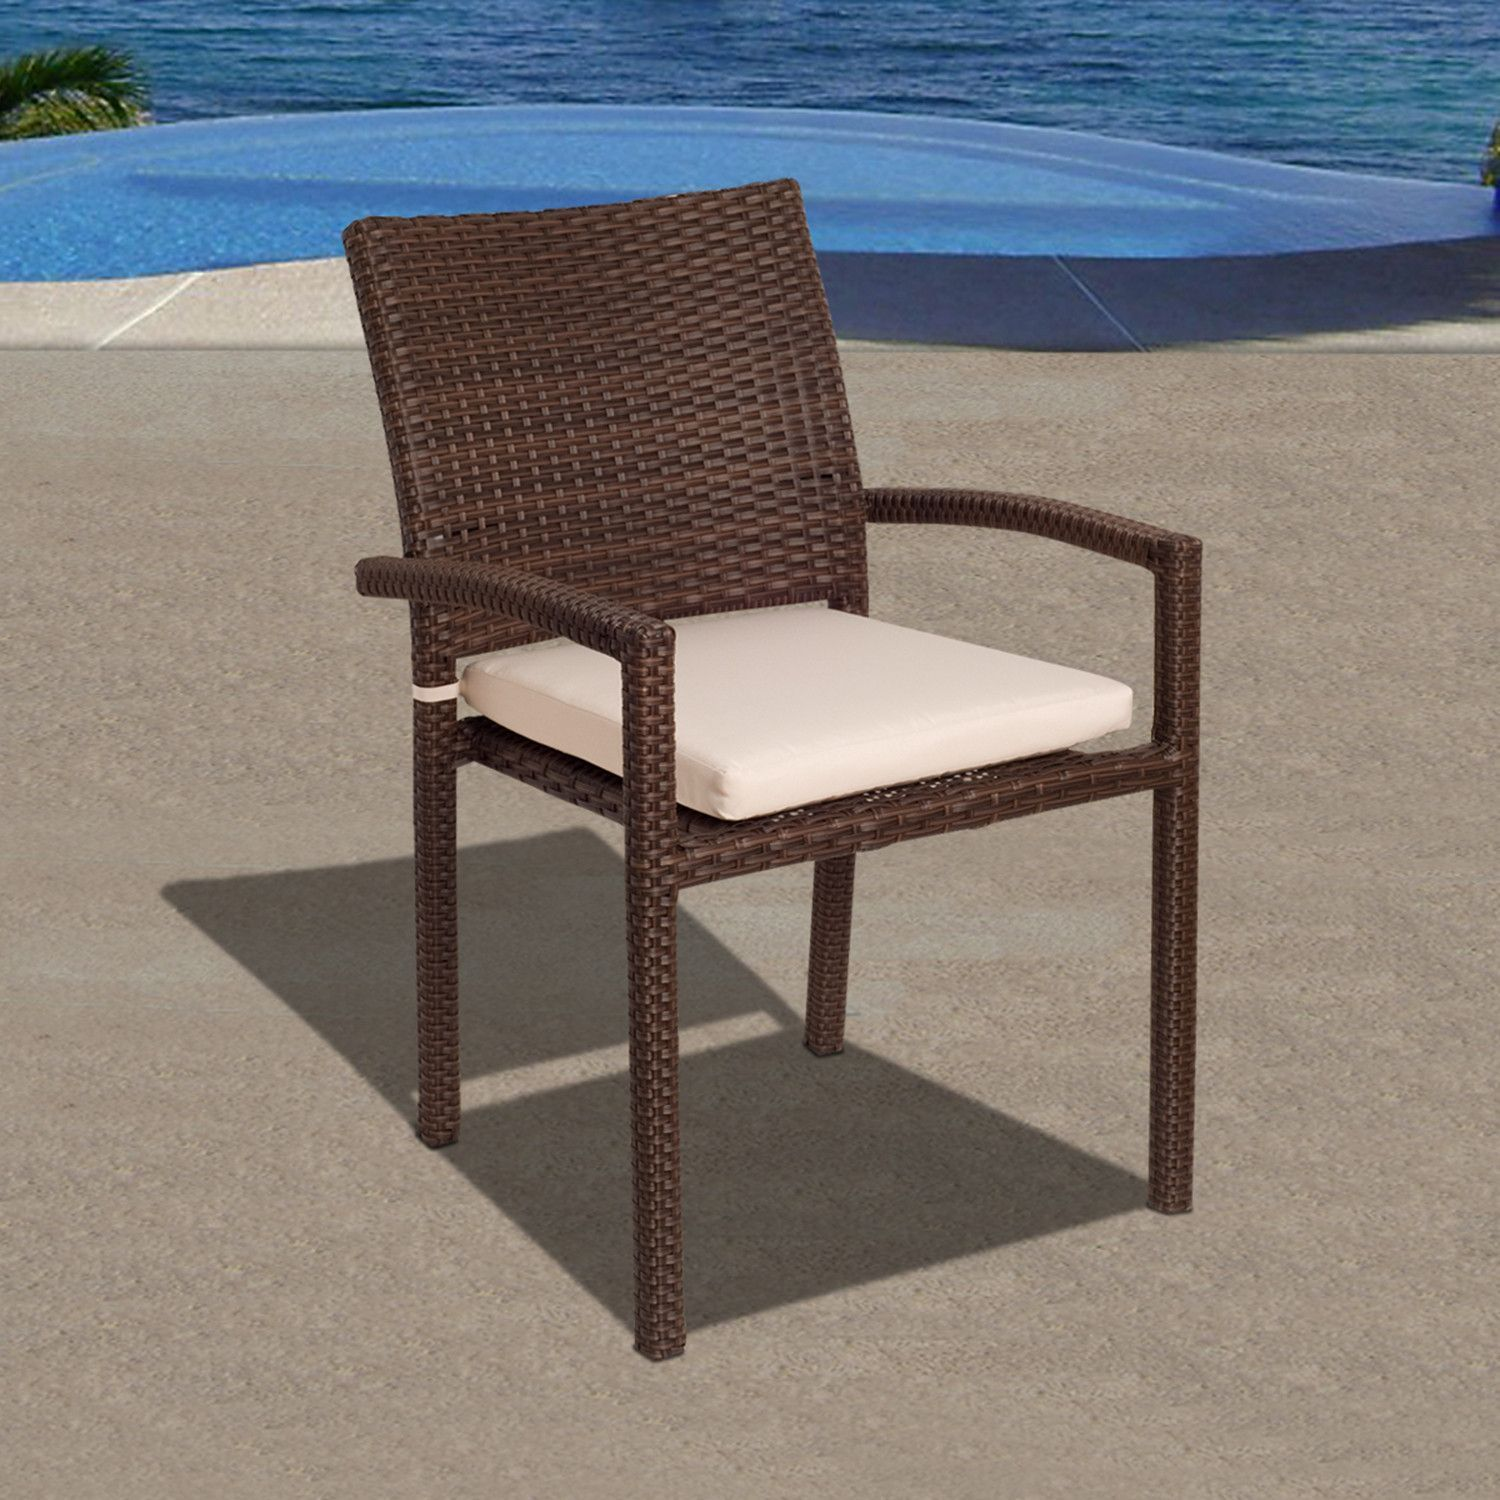 Liberty 4 Piece Wicker Patio Armchair Set with Off-White Cushions